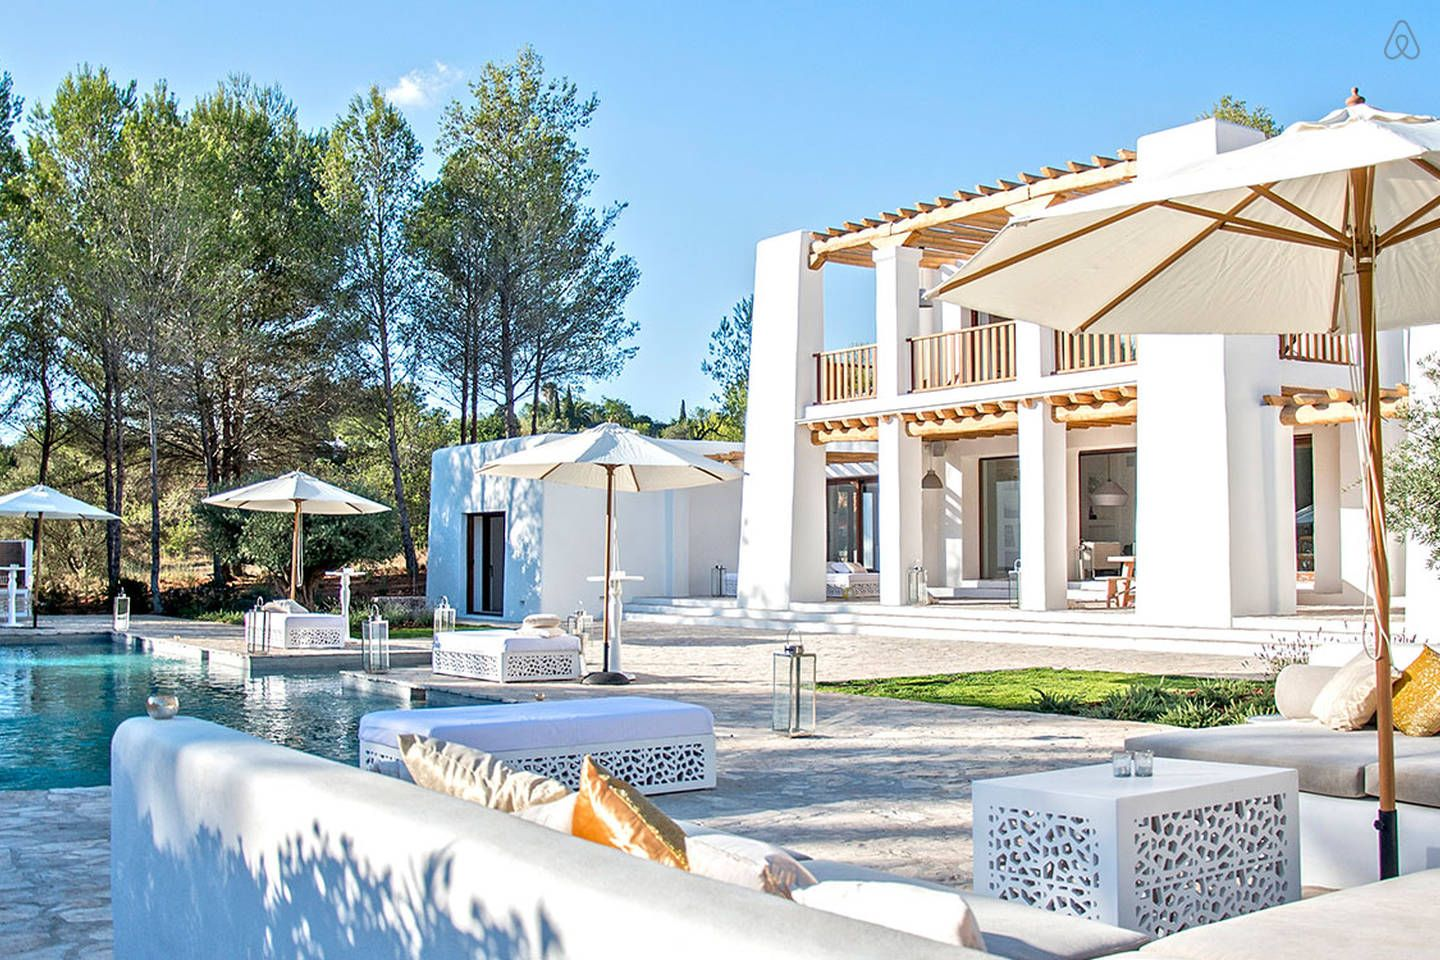 Rbnb Ibiza Pin By Gwen Swanson On Best Of Airbnb In 2018 Pinterest